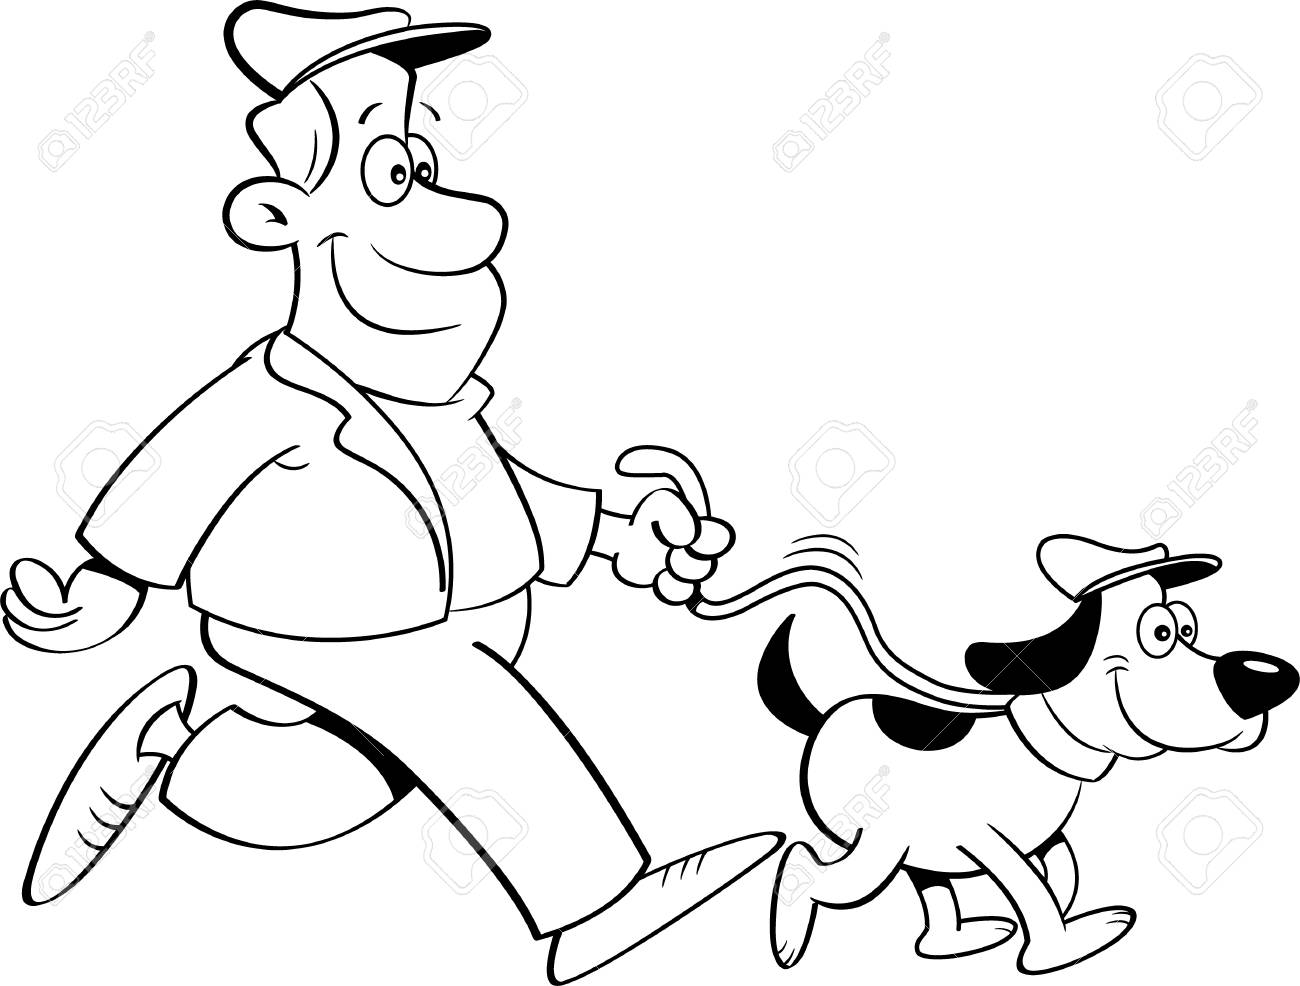 Black And White Illustration Of A Man Walking A Dog Royalty Free Cliparts Vectors And Stock Illustration Image 74611167